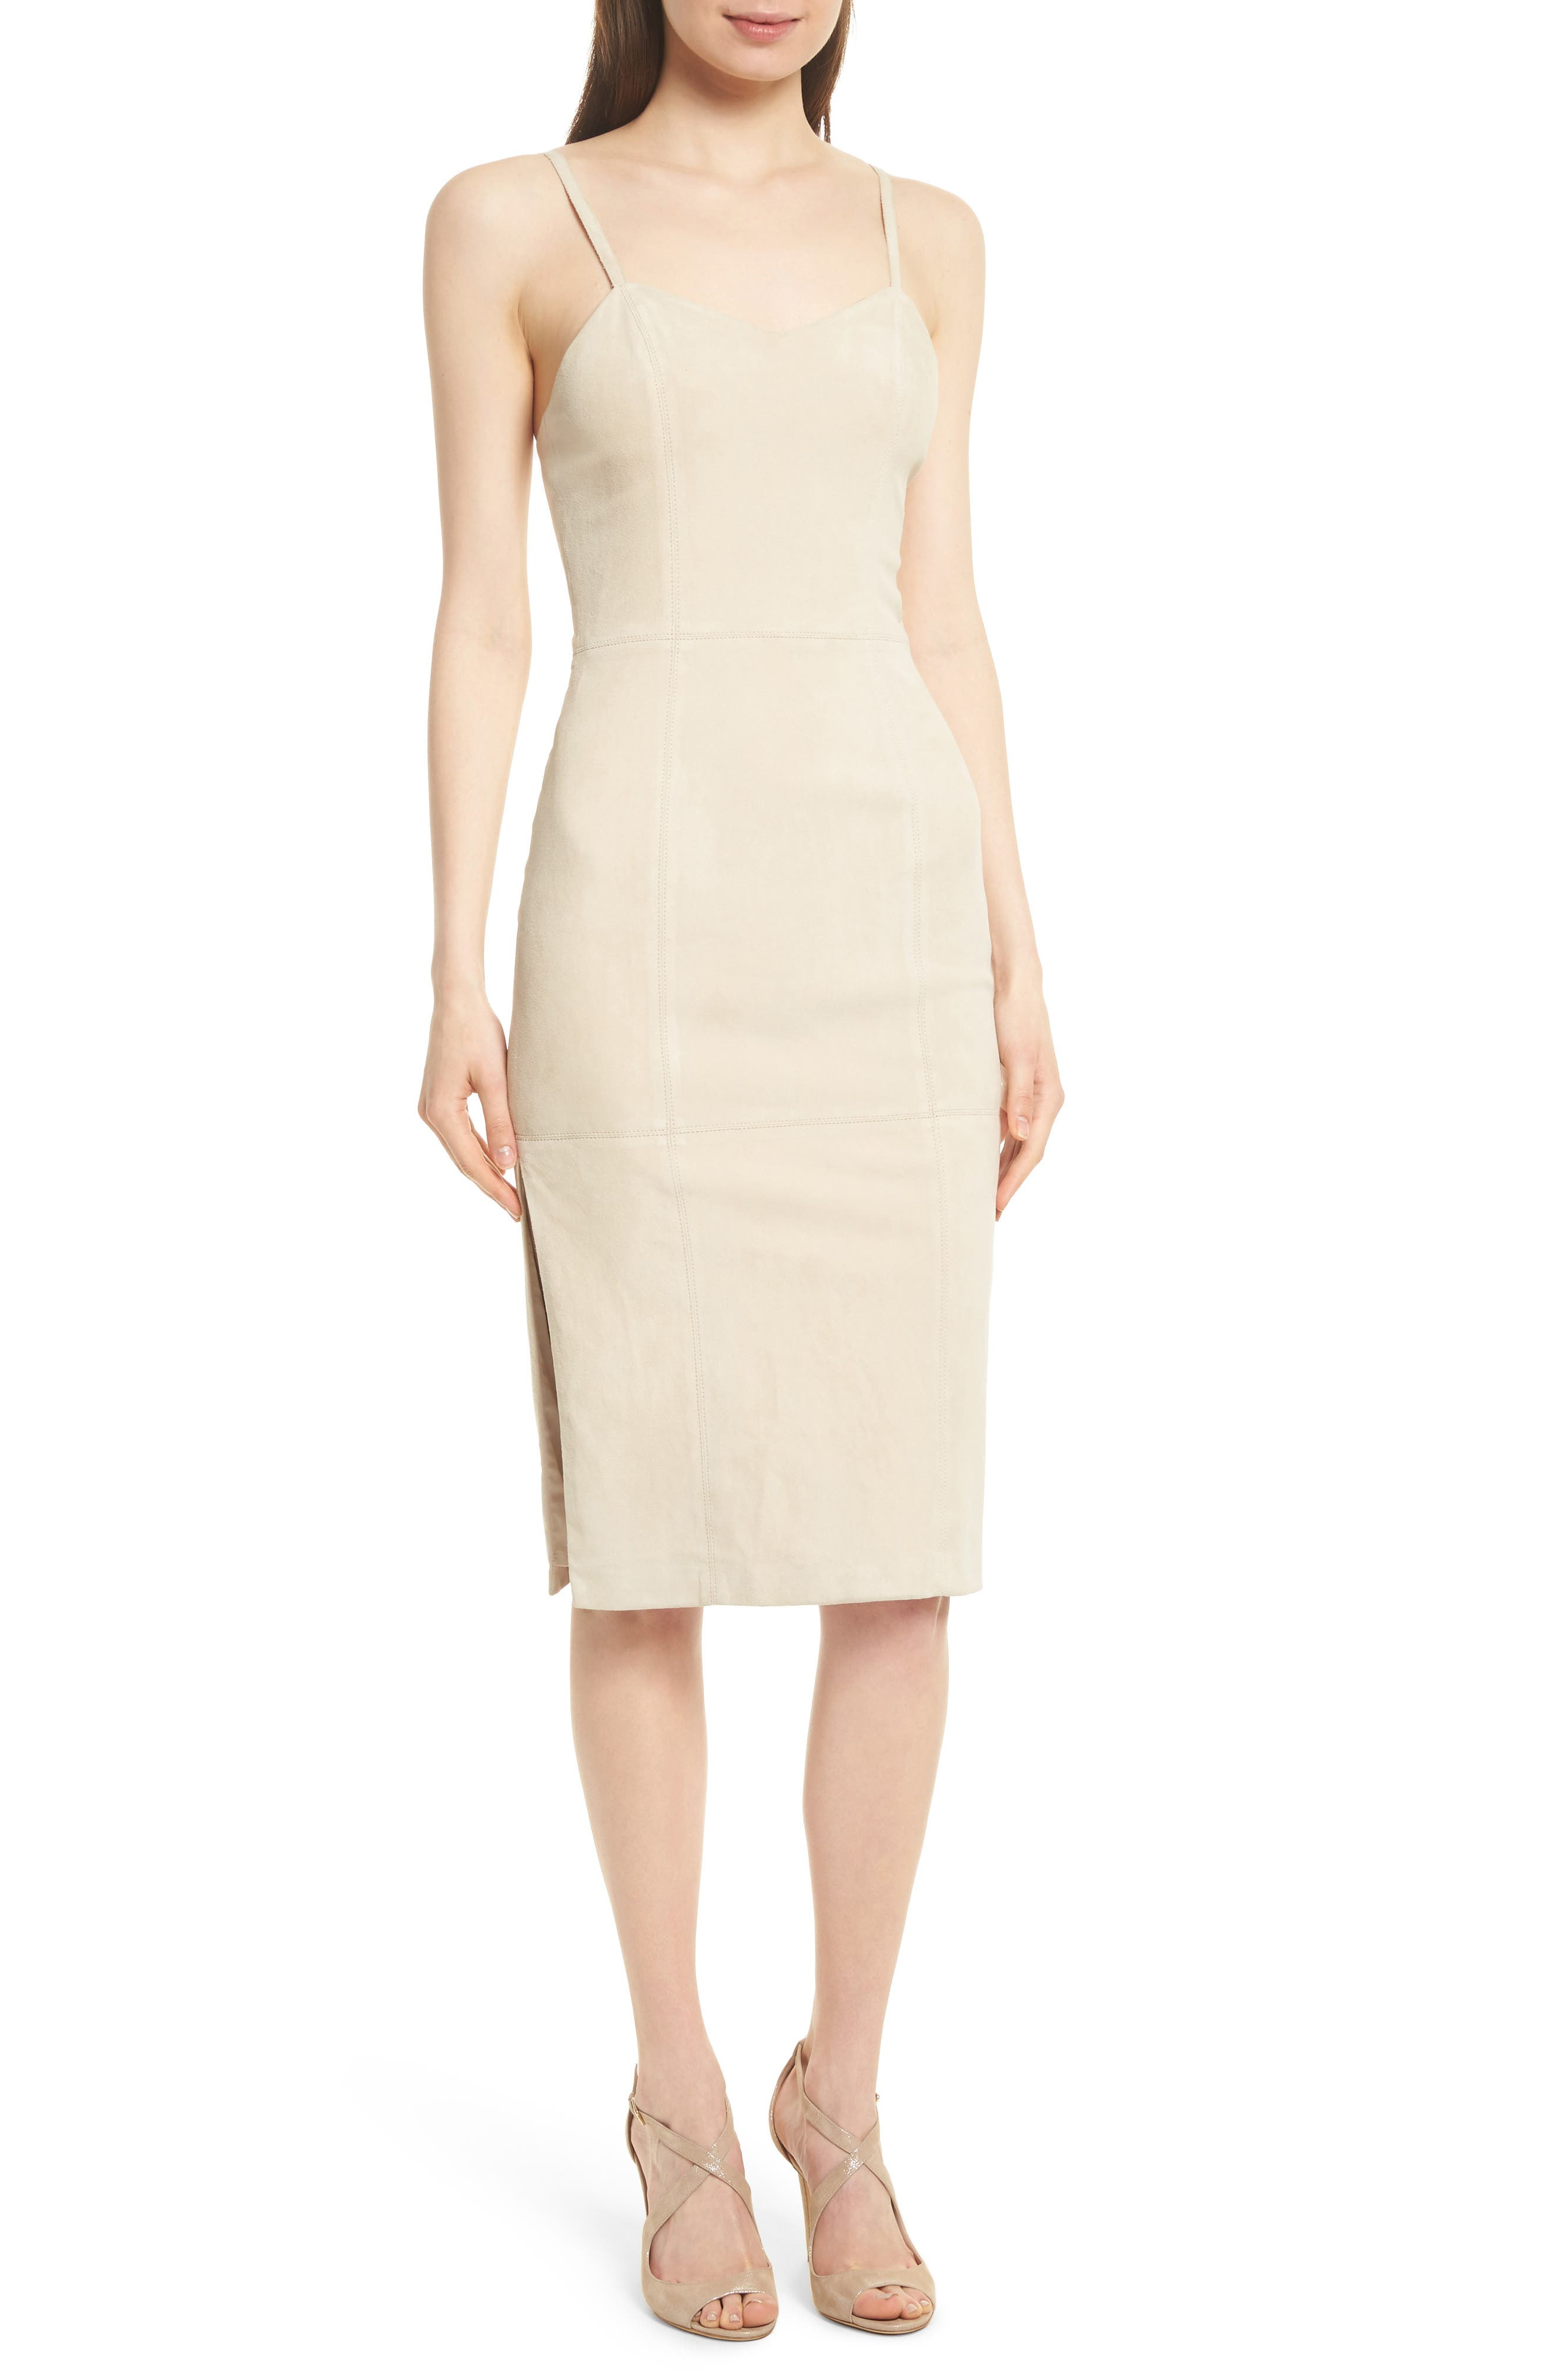 Rochell Suede Sheath Dress,                             Main thumbnail 1, color,                             Champagne